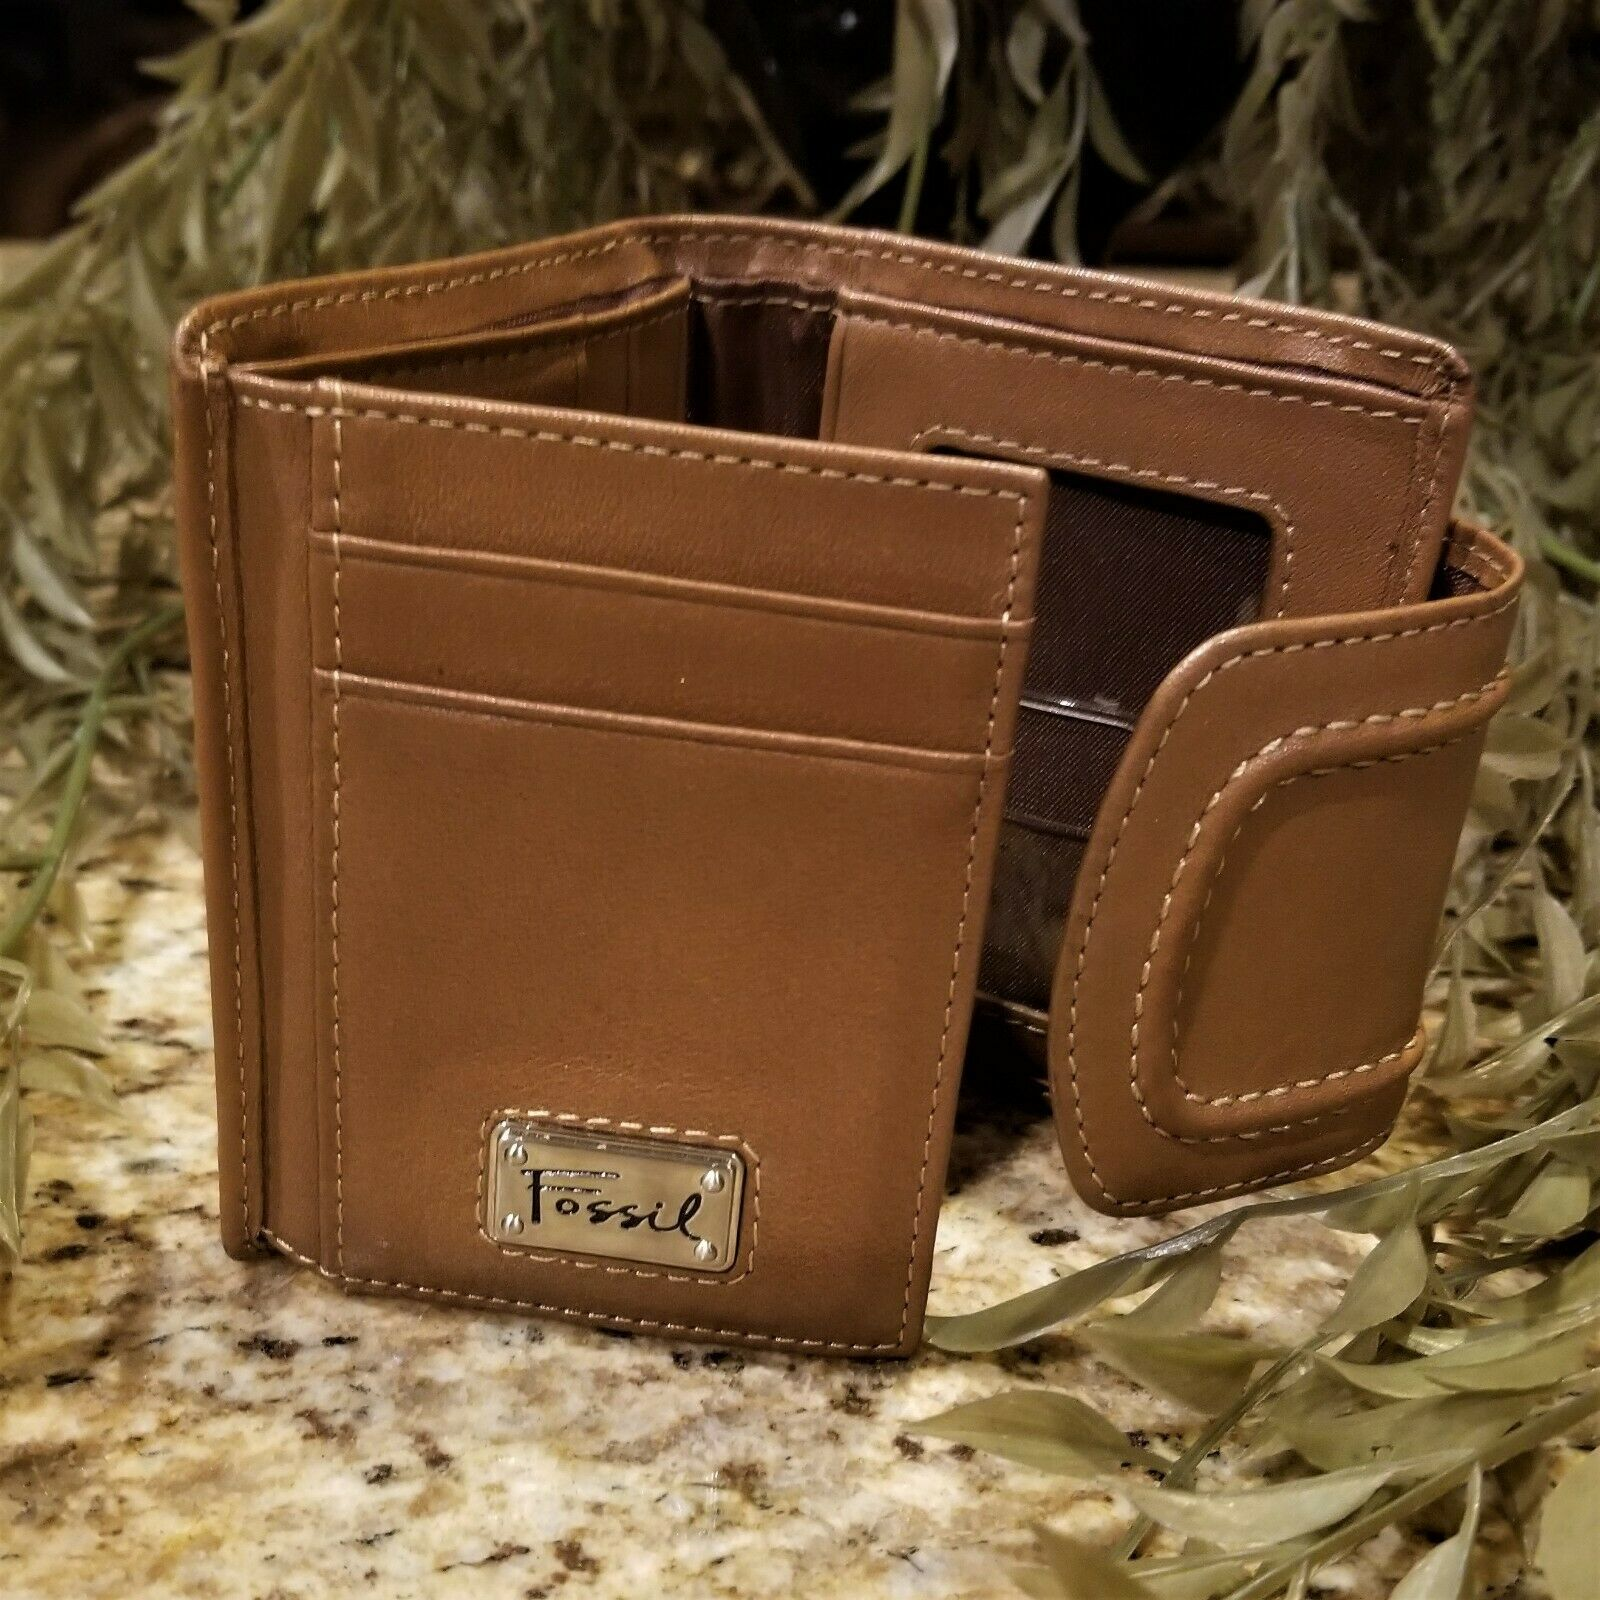 Womens FOSSIL Multi Compartment Tan Leather Trifold Wallet